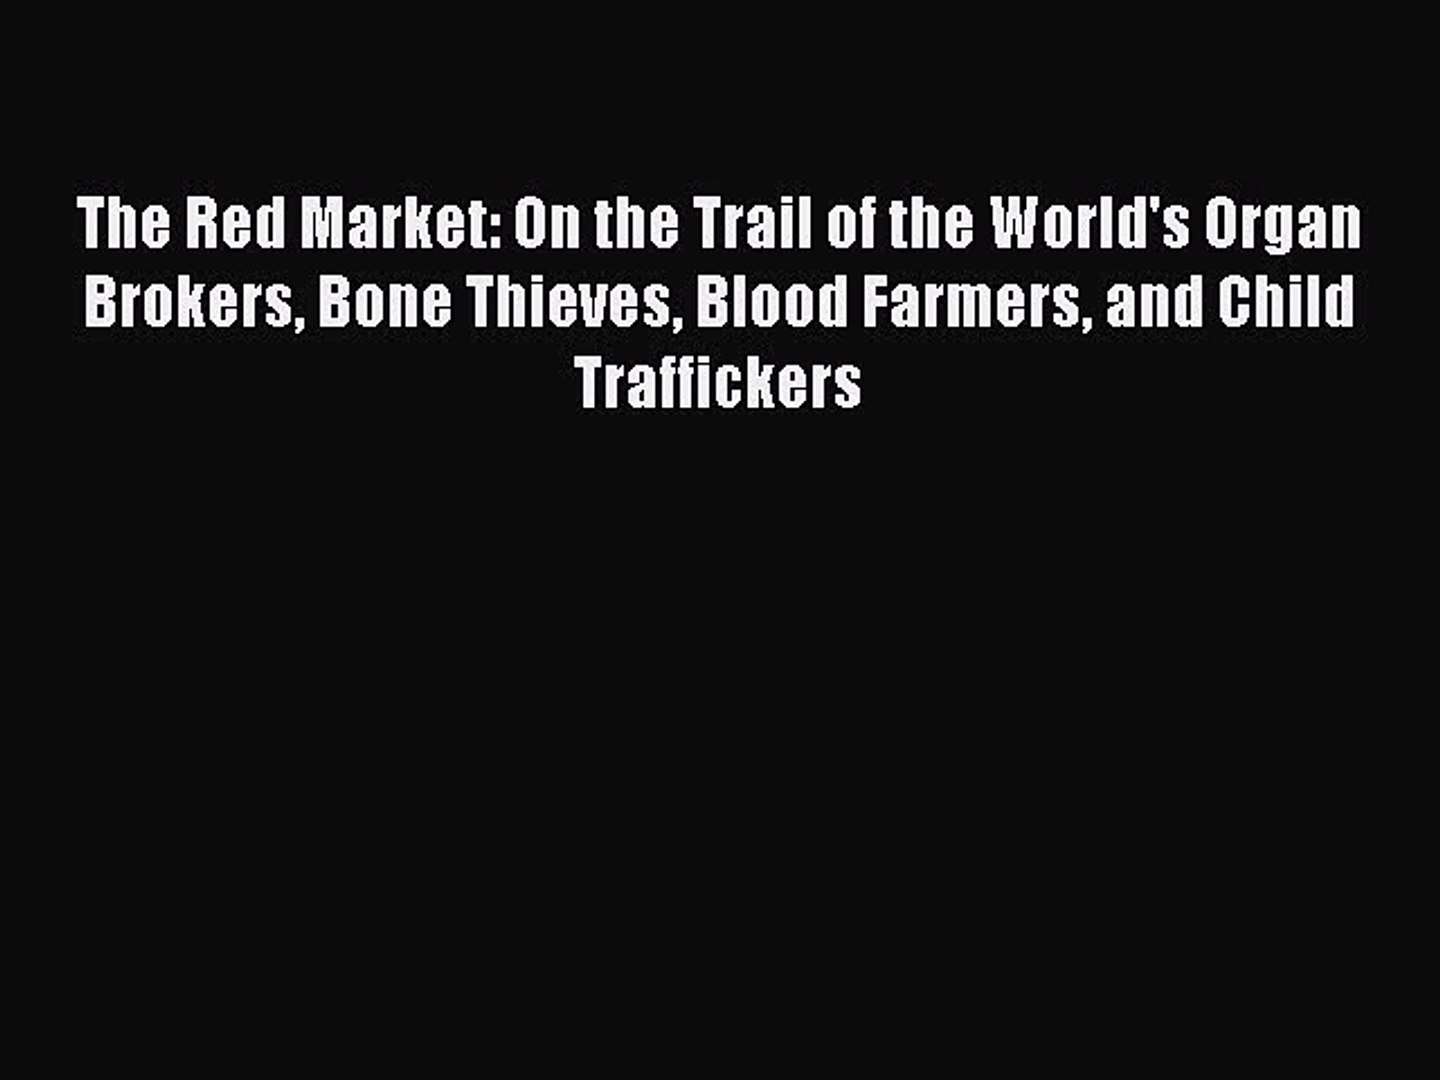 Read The Red Market: On the Trail of the World's Organ Brokers Bone Thieves Blood Farmers and